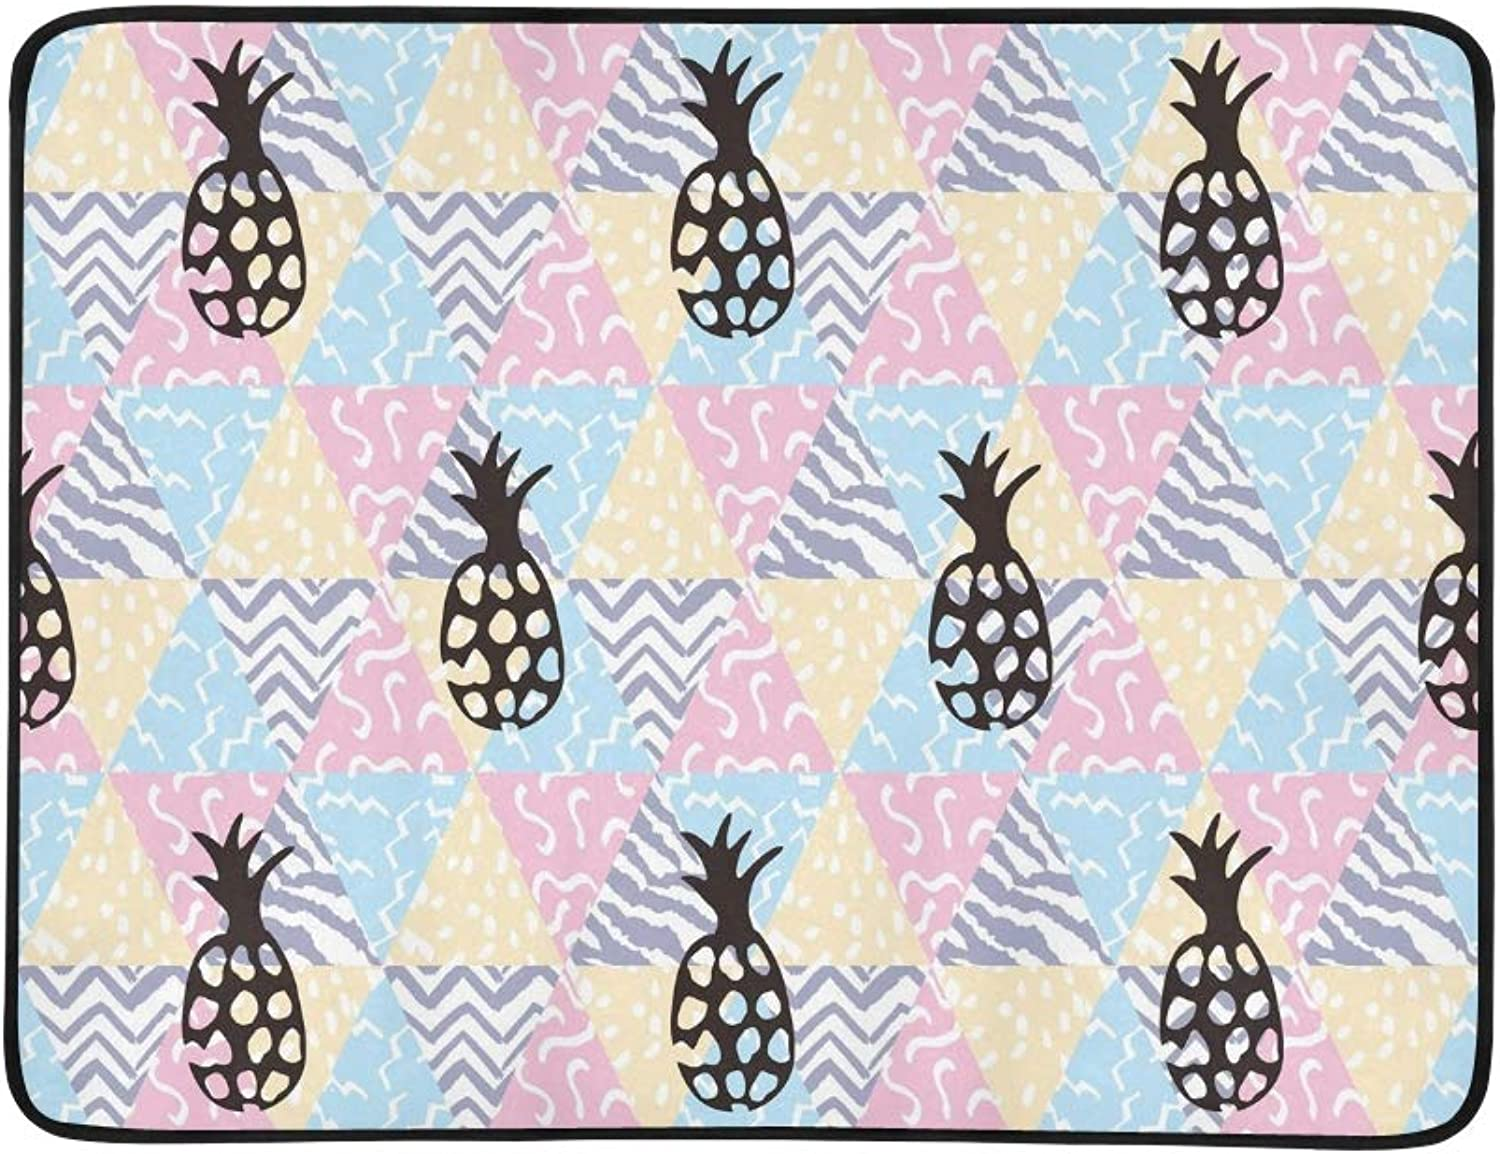 Pineapple Geometric Portable and Foldable Blanket Mat 60x78 Inch Handy Mat for Camping Picnic Beach Indoor Outdoor Travel